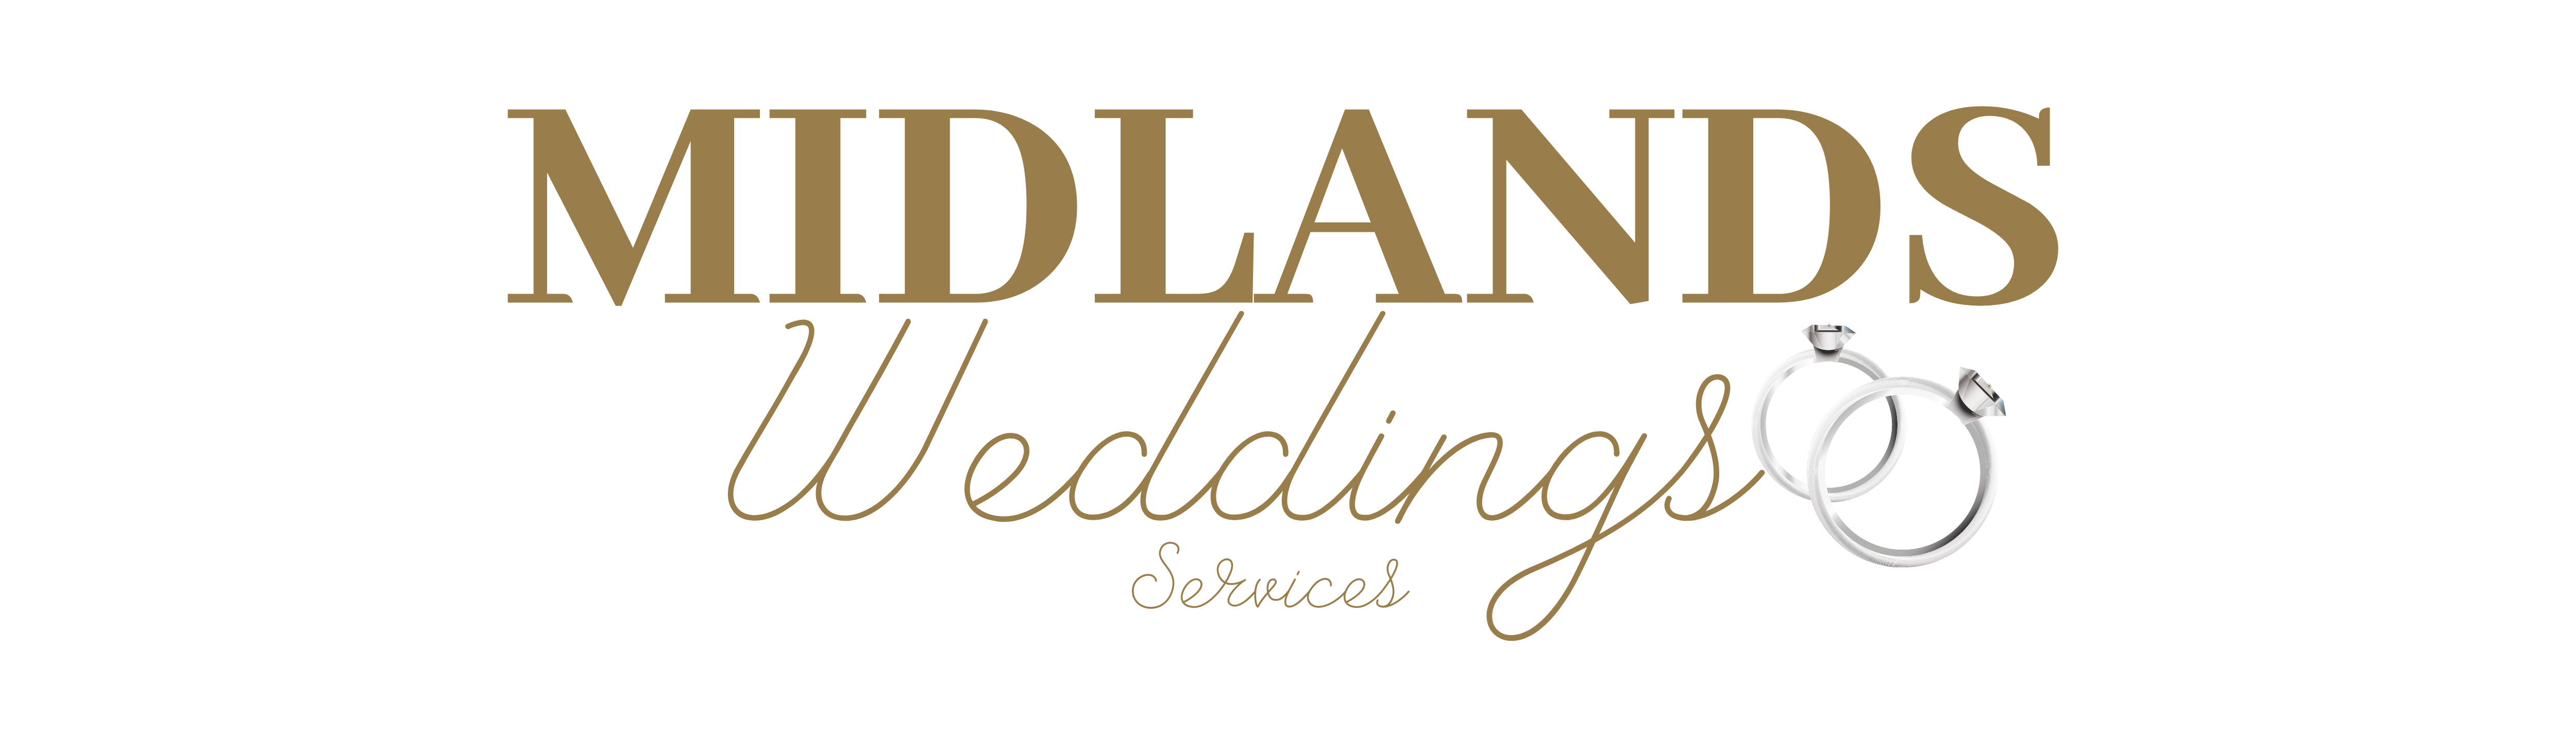 Midlands Wedding Services